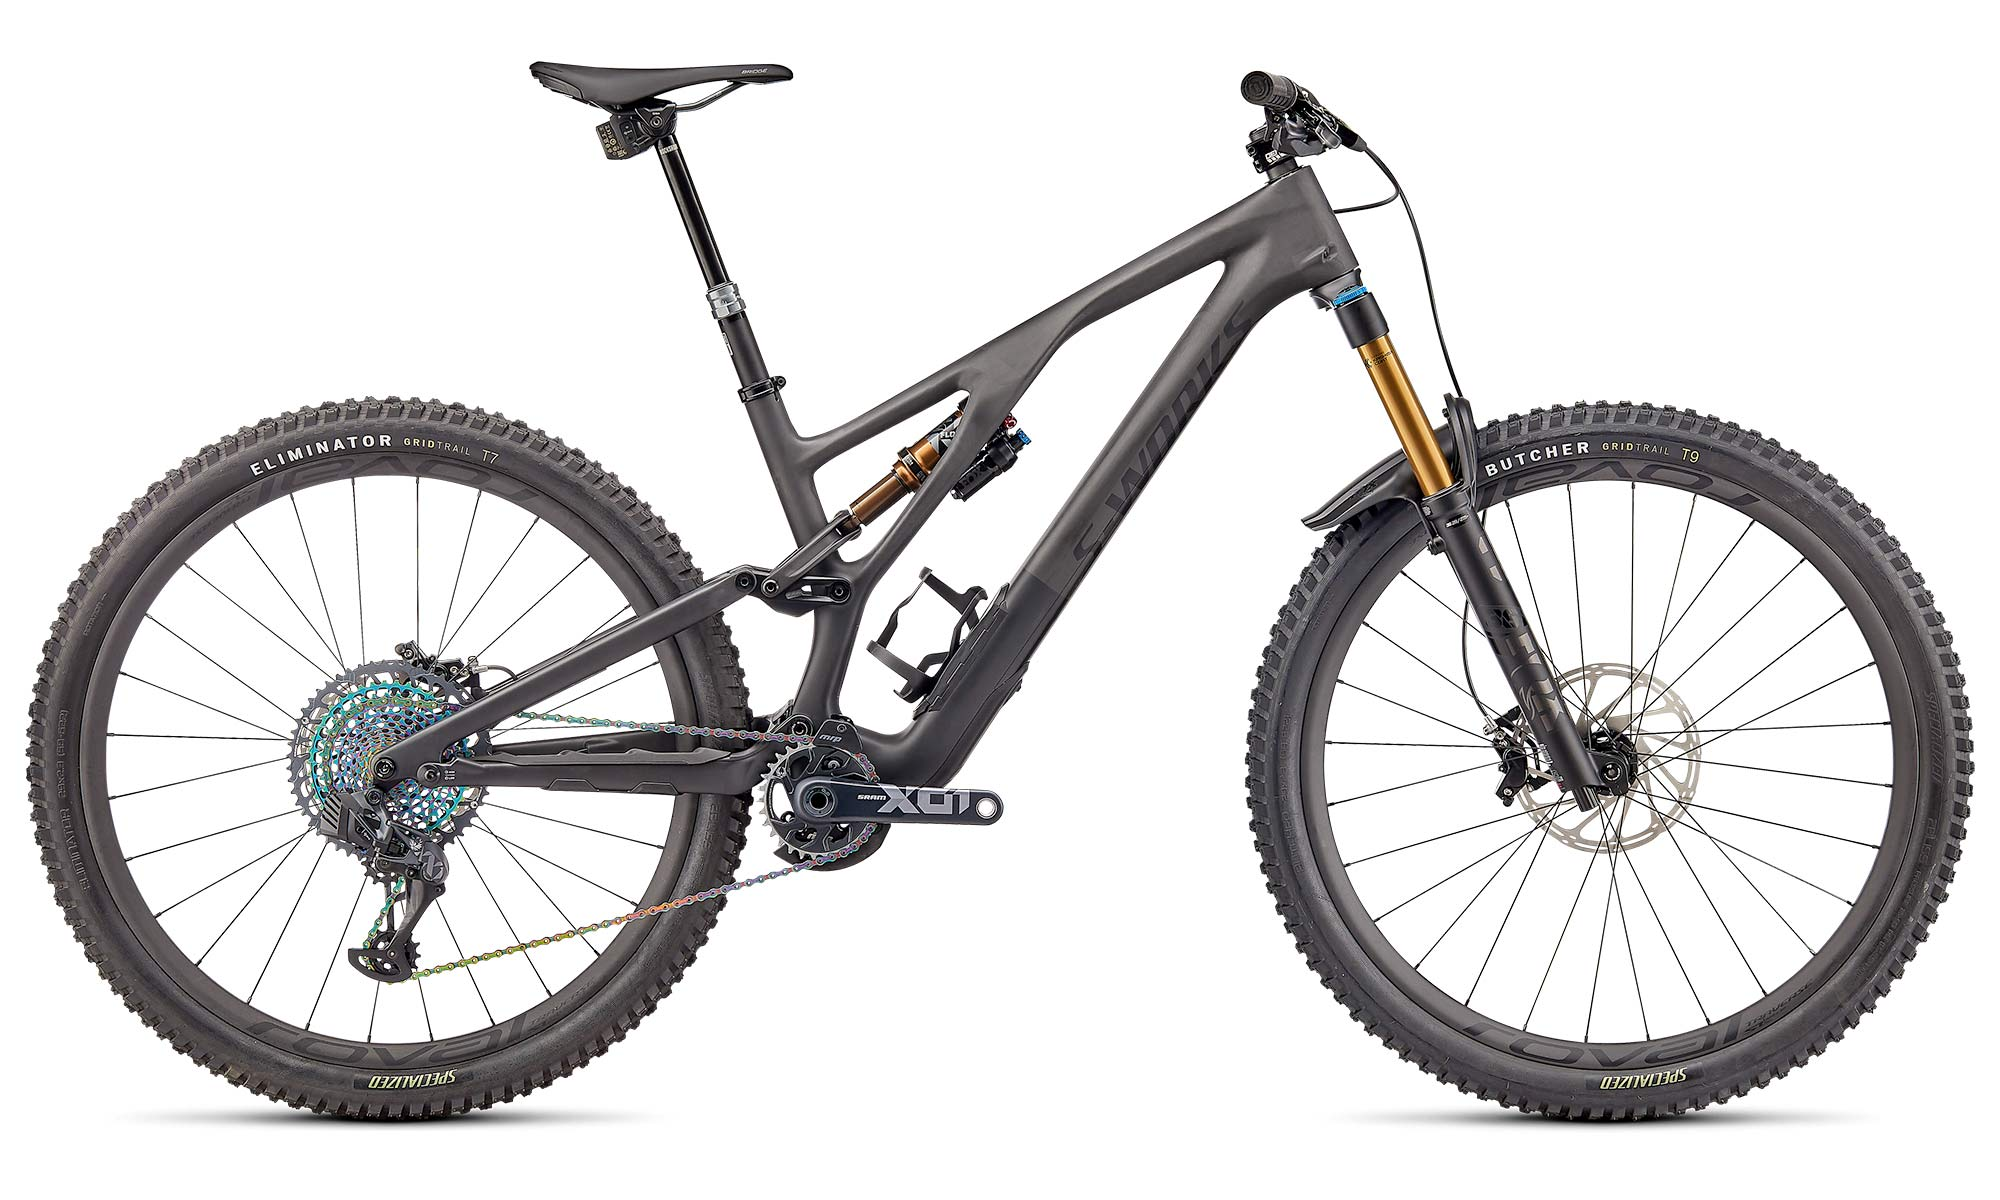 2022 Specialized Stumpjumper EVO carbon bikes get more expensive, complete